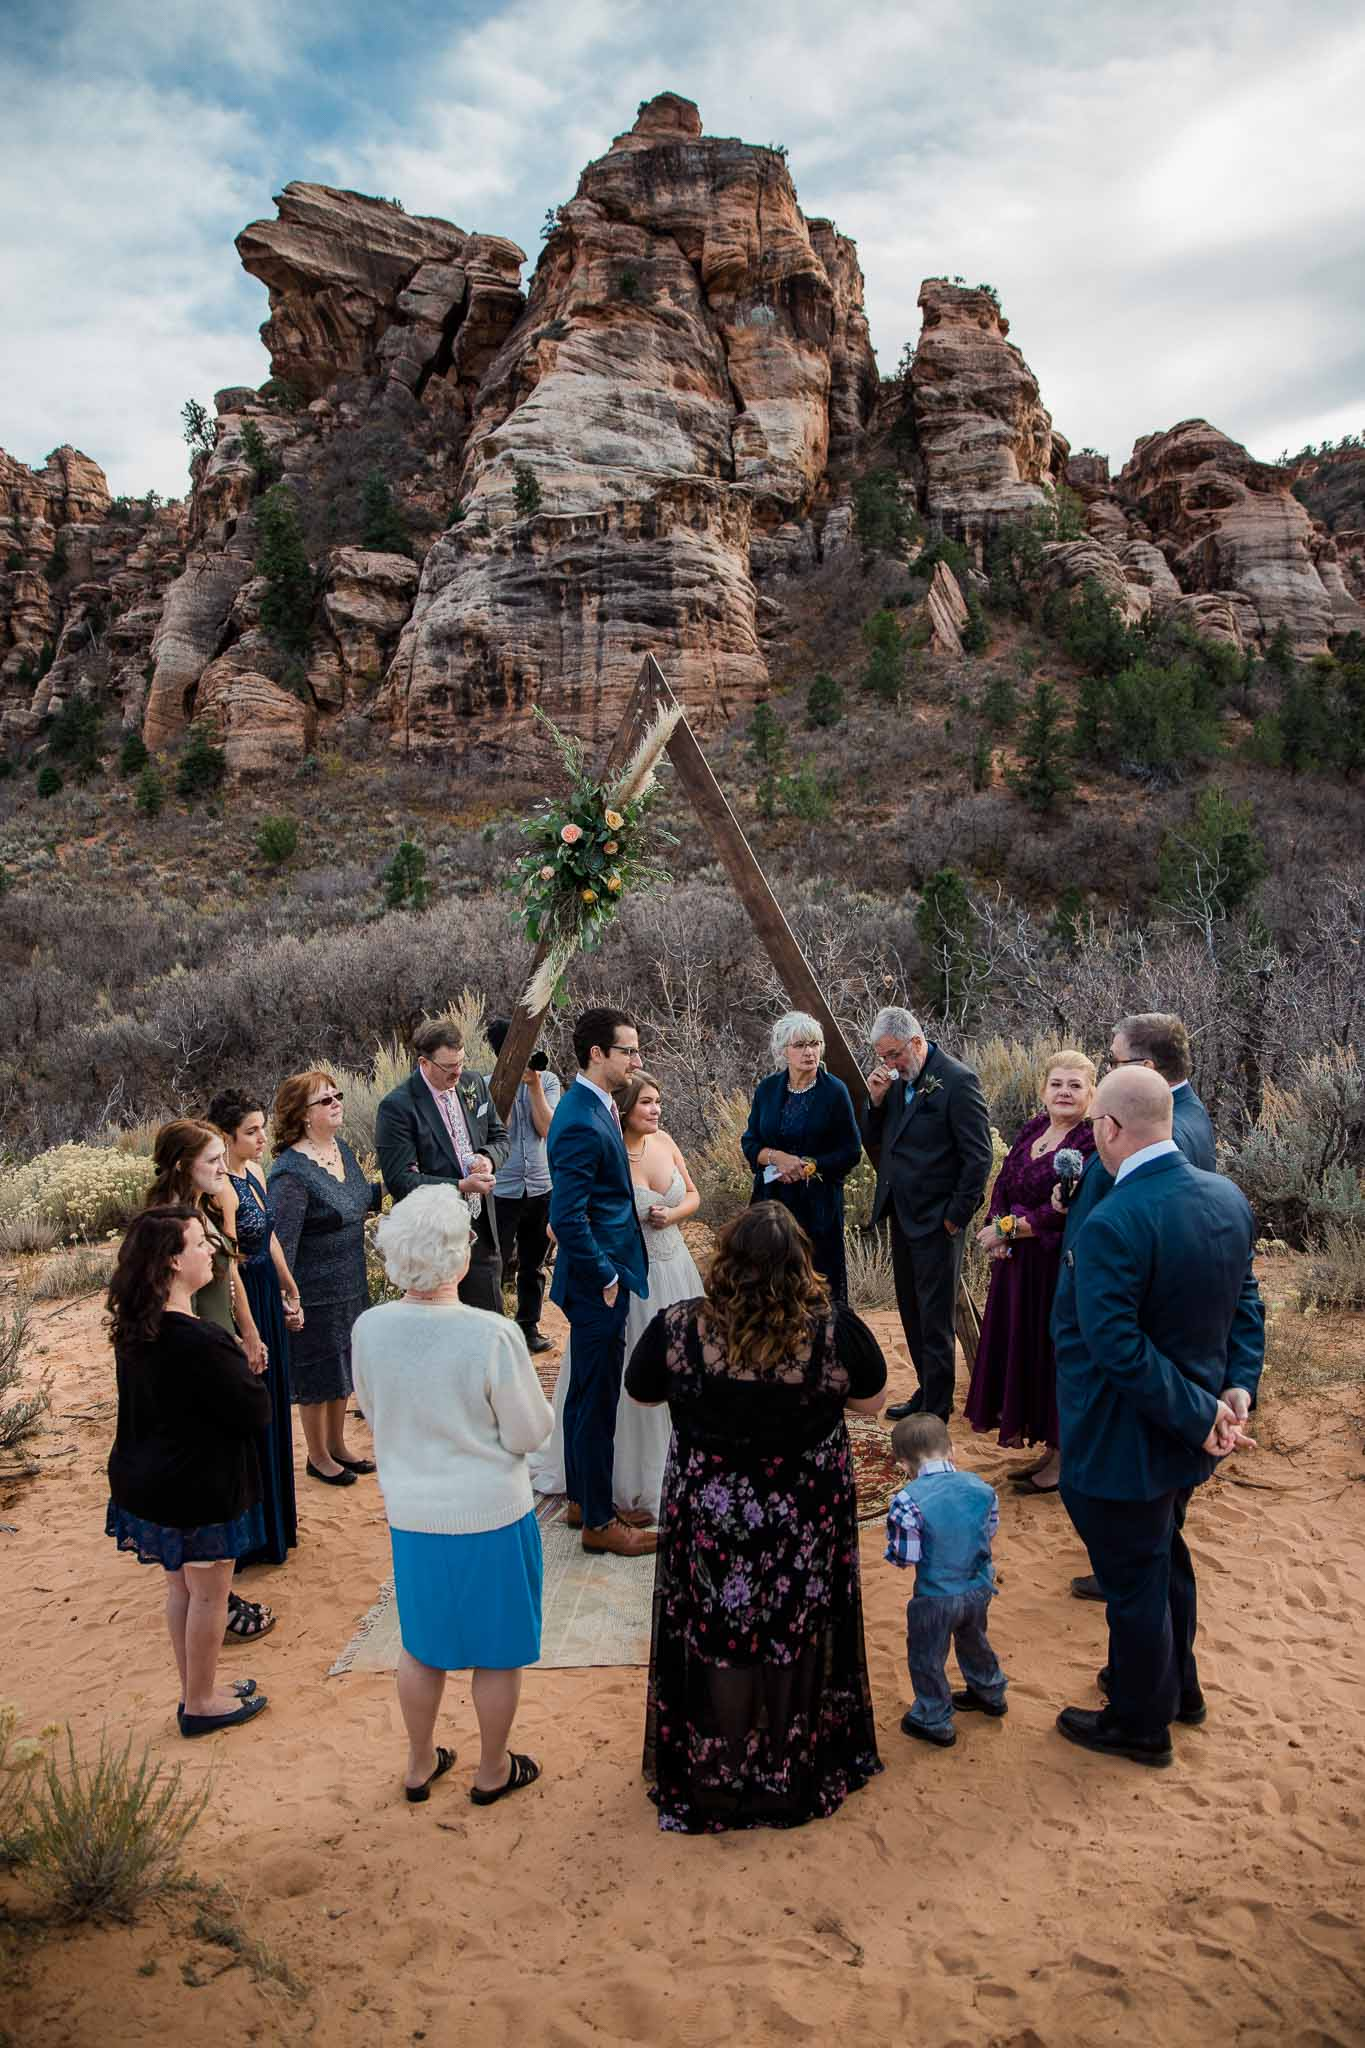 Family gathers around couple for blessing during their intimate wedding ceremony in Zion National Park Utah